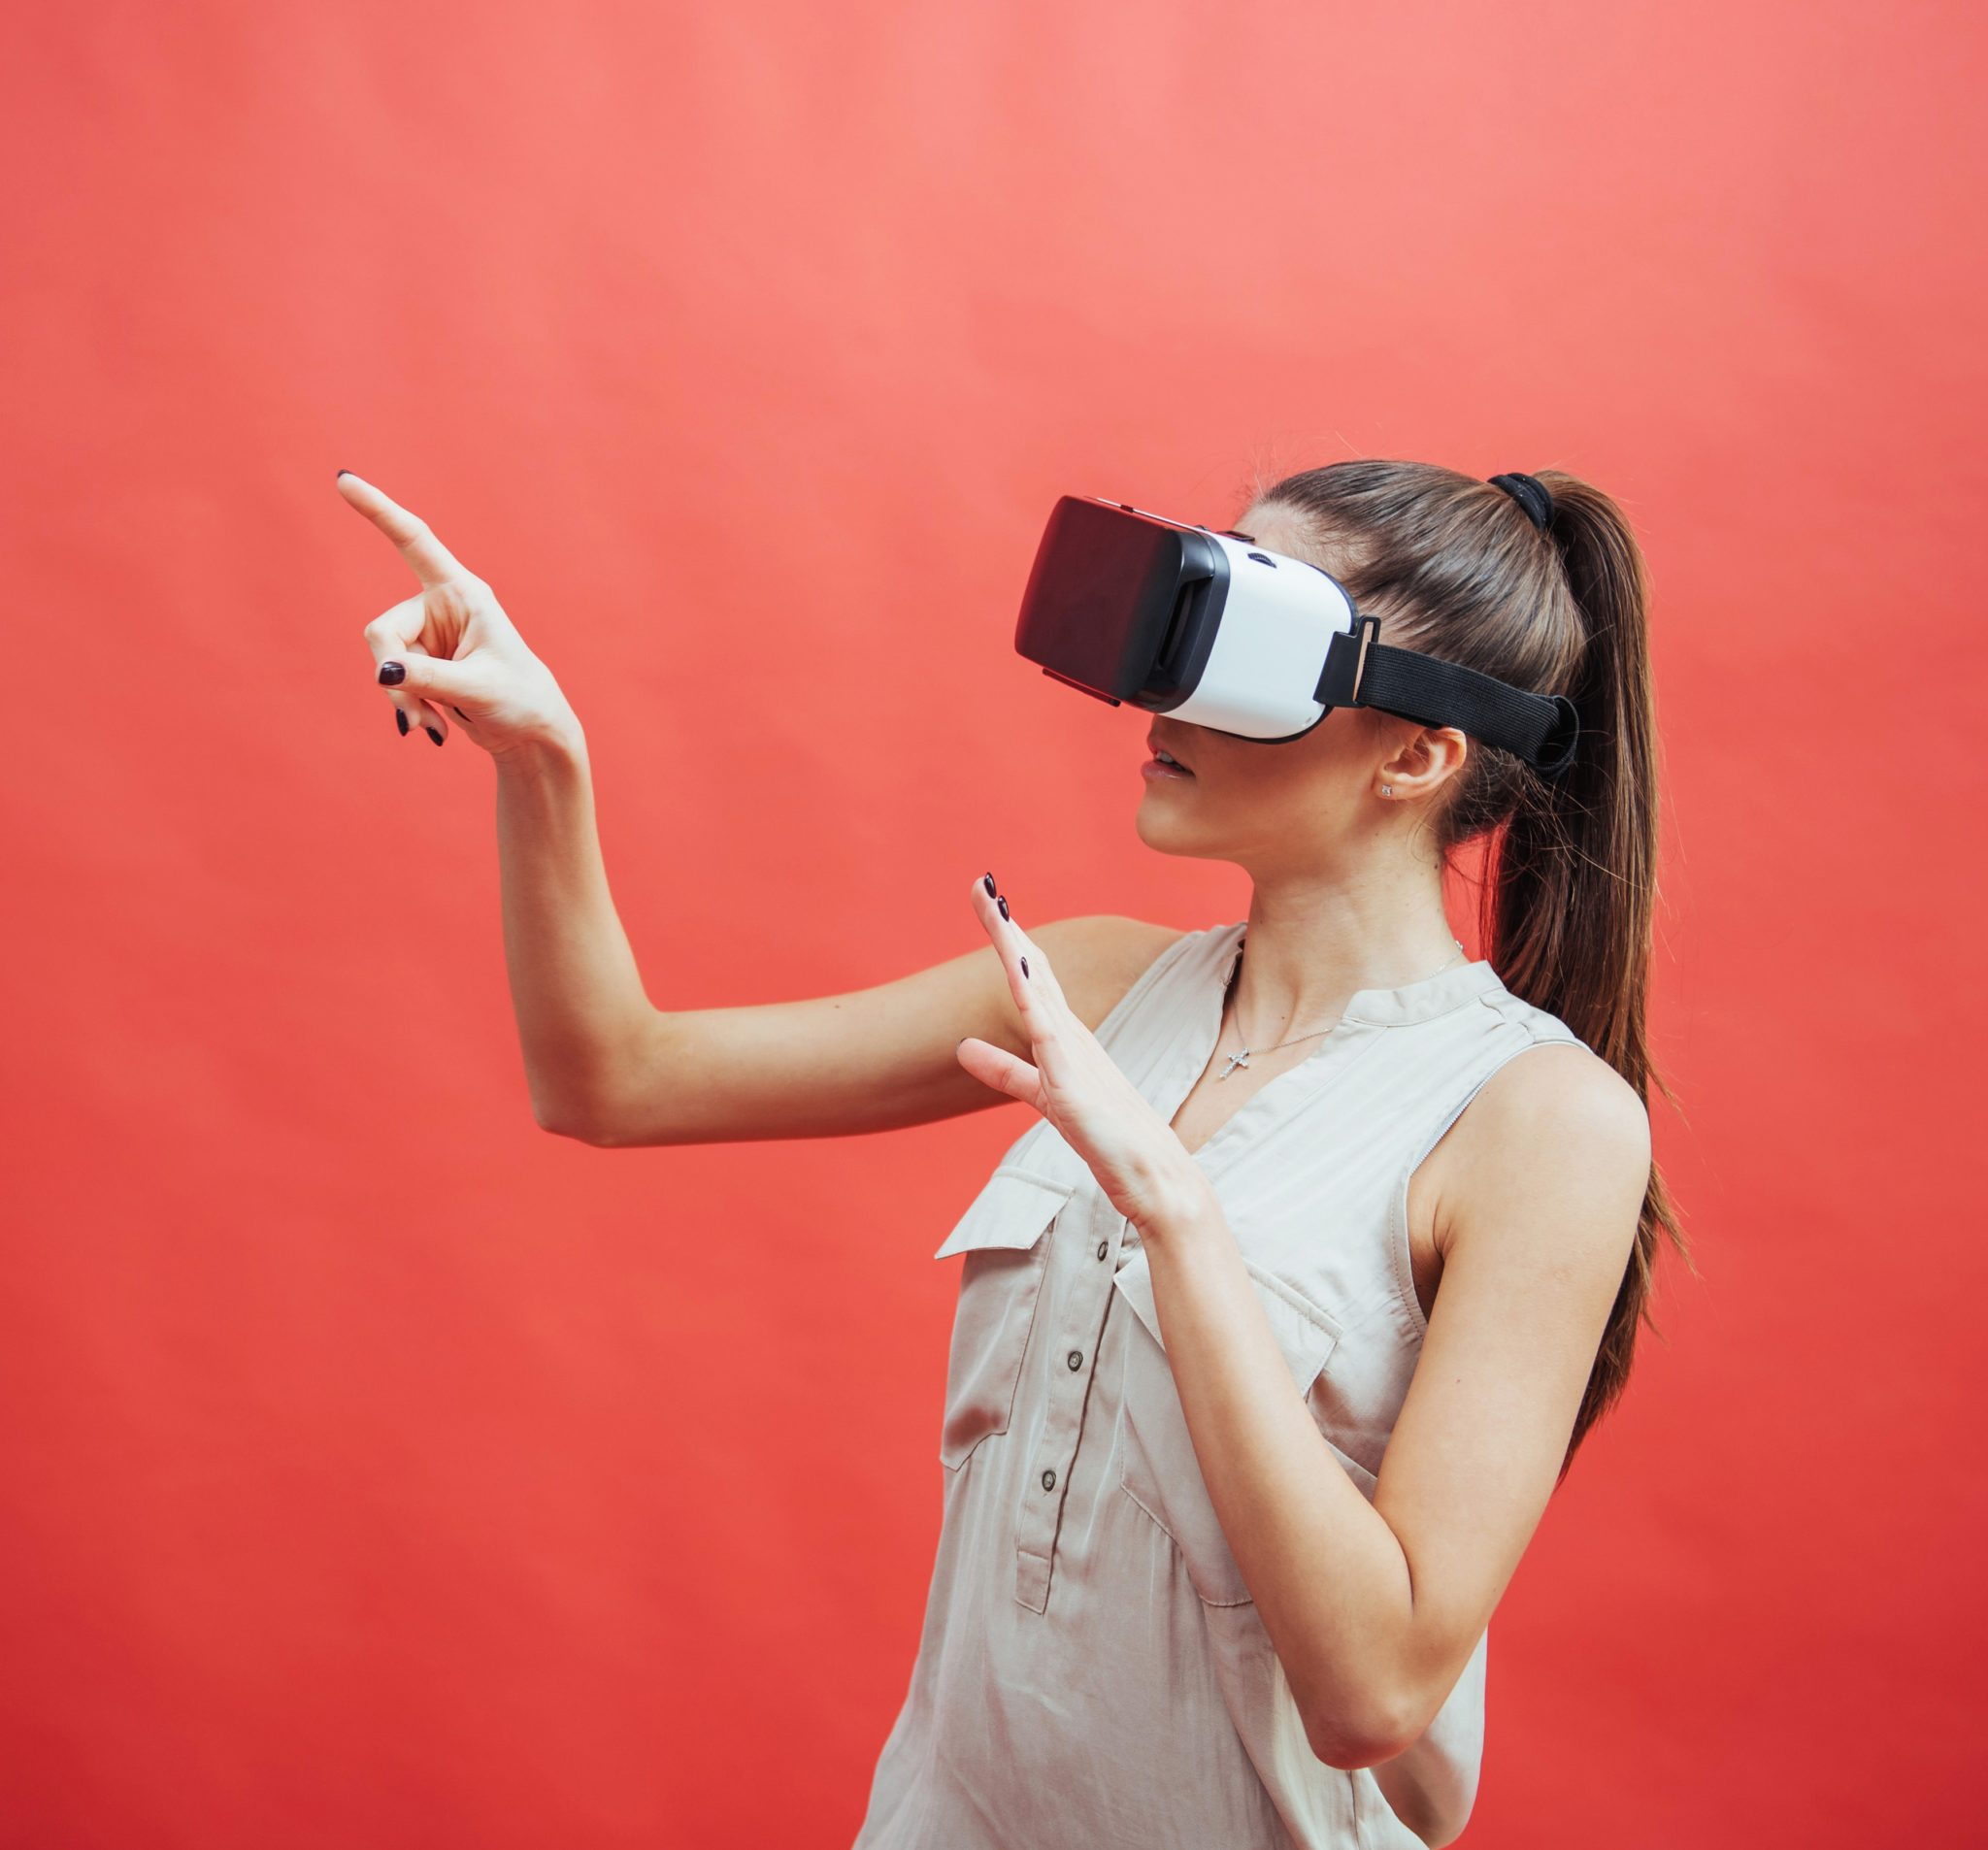 portrait of happy smiling young beautiful girl, gain experience using VR-headset virtual reality glasses, isolated on a red background